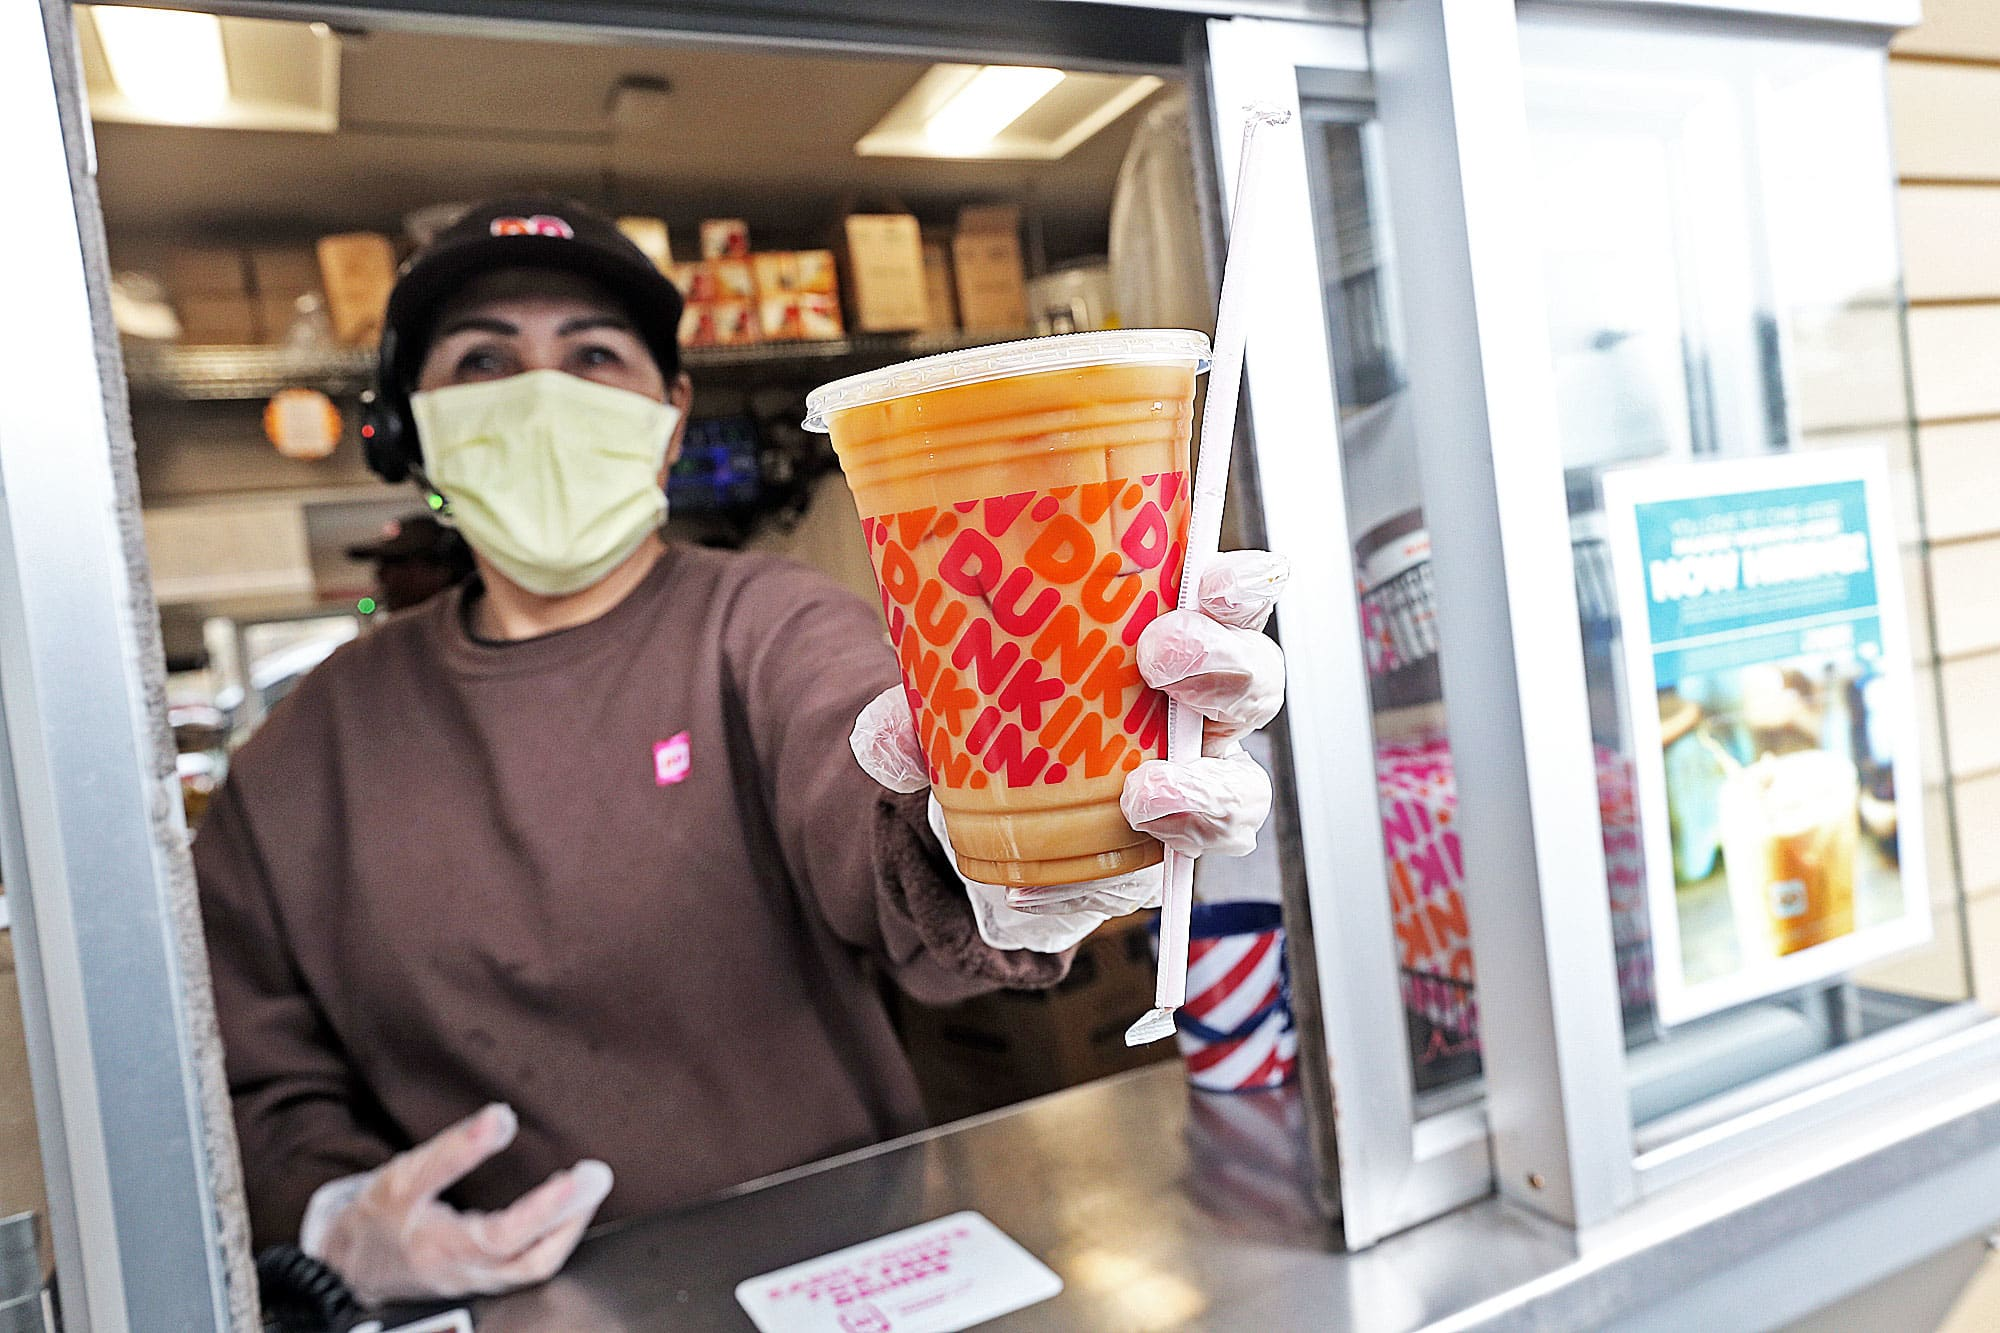 Restaurants are in 'fight mode' as they cope with pandemic, Dunkin' Brands CEO says